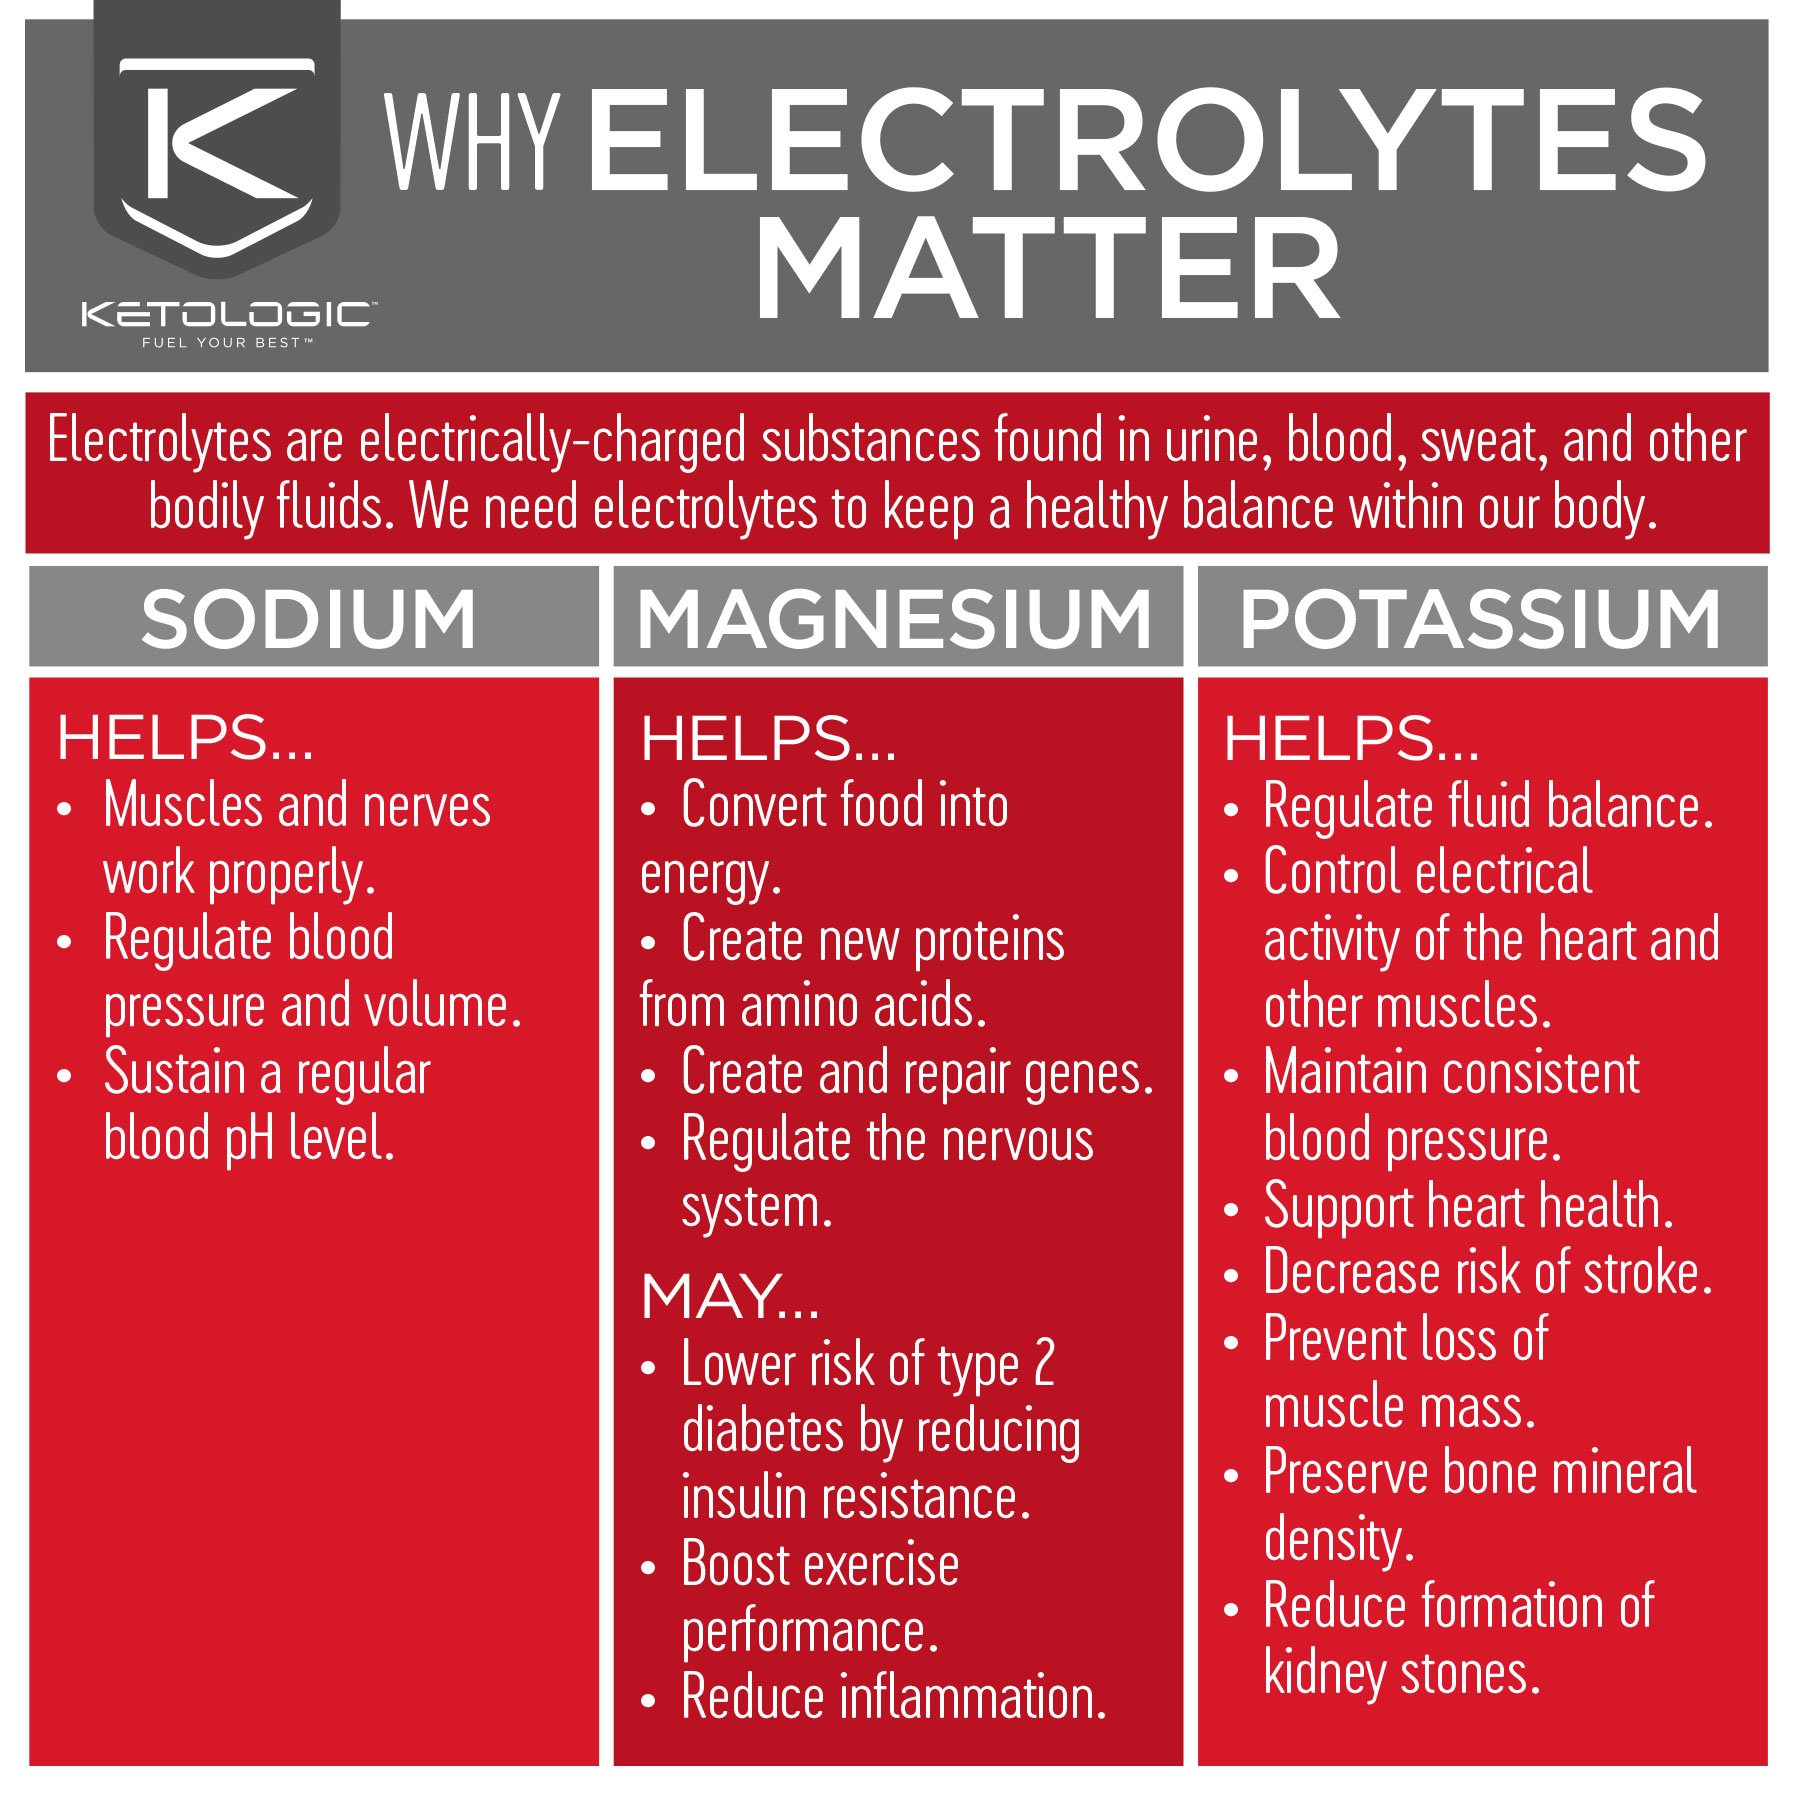 KetoLogic BHB,  Patriot Pop | Ketone Supplement, Suppresses Appetite, Increases Energy, Low Carb, Electrolytes, Beta-Hydroxybutyrate Salts | 60 Servings by Ketologic (Image #5)